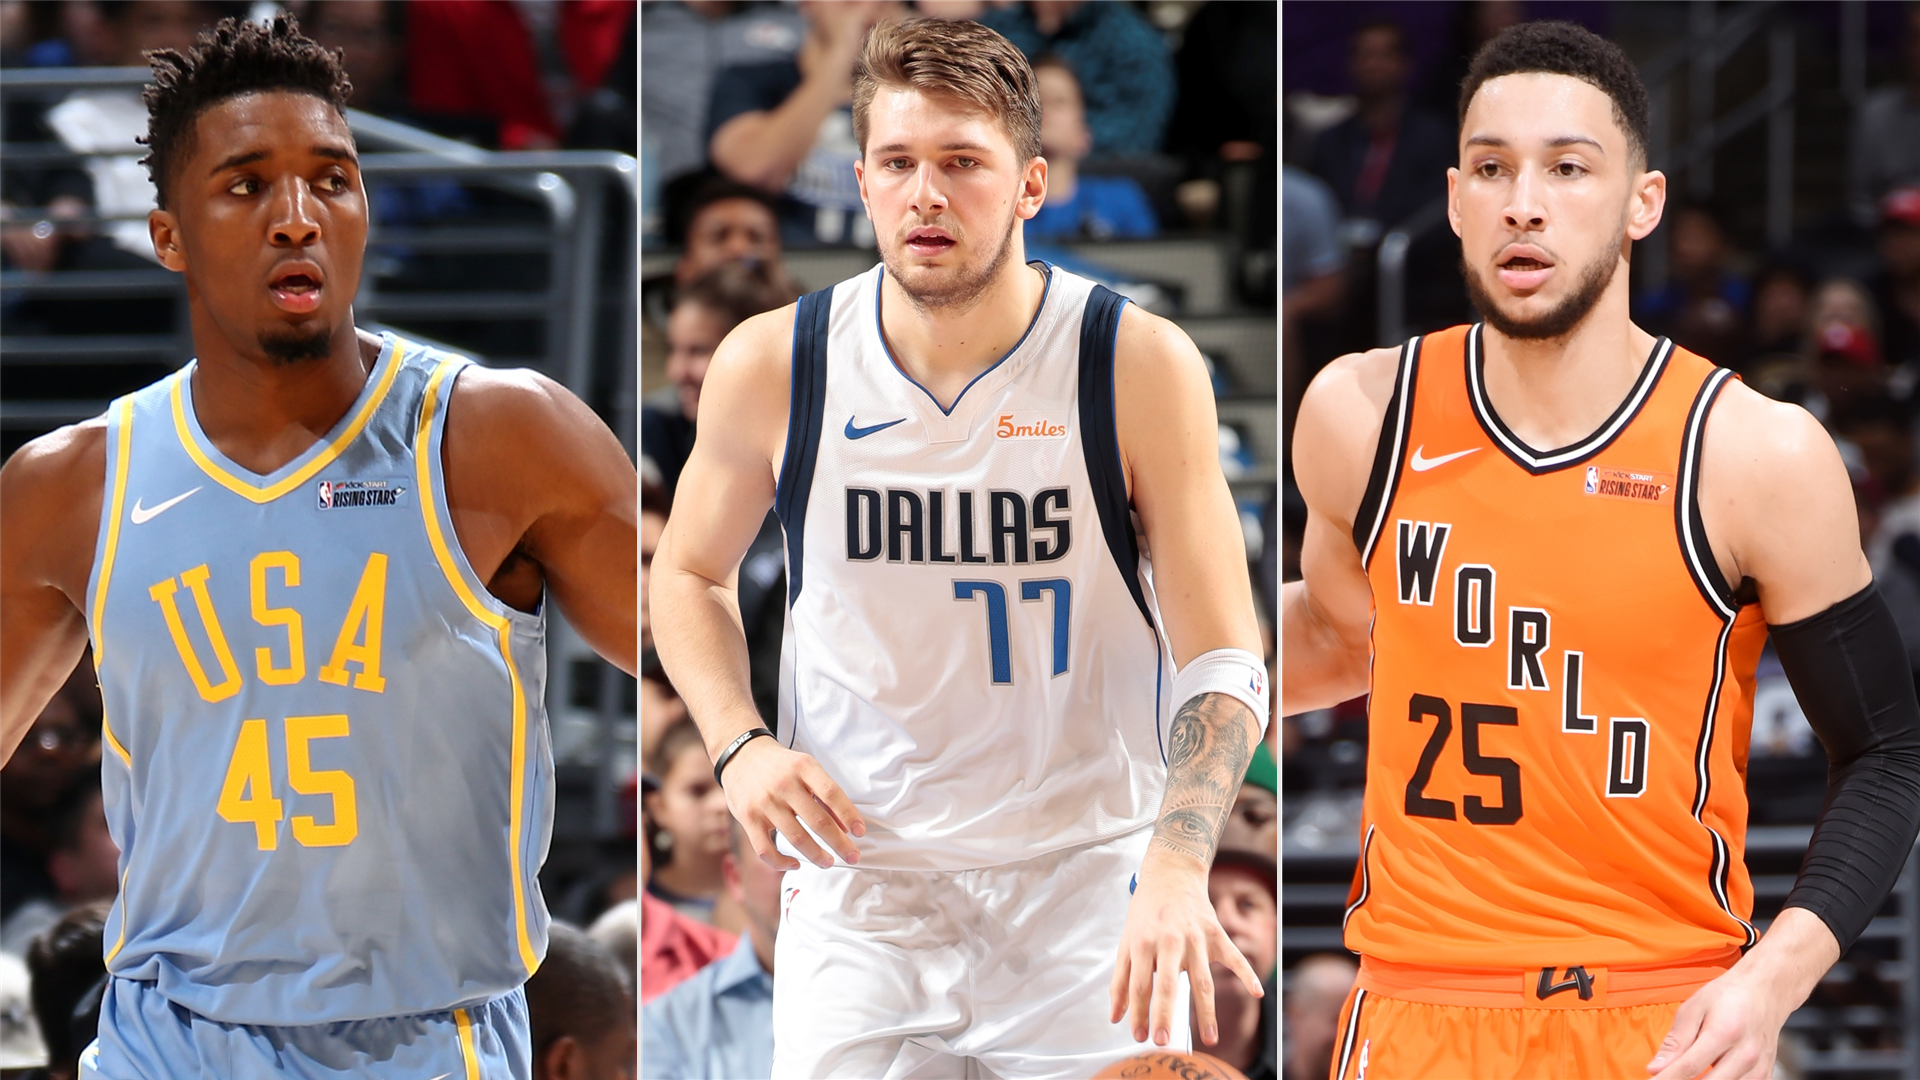 huge selection of 96f66 0add4 NBA All-Star 2019: Donovan Mitchell, Luka Doncic & Ben ...